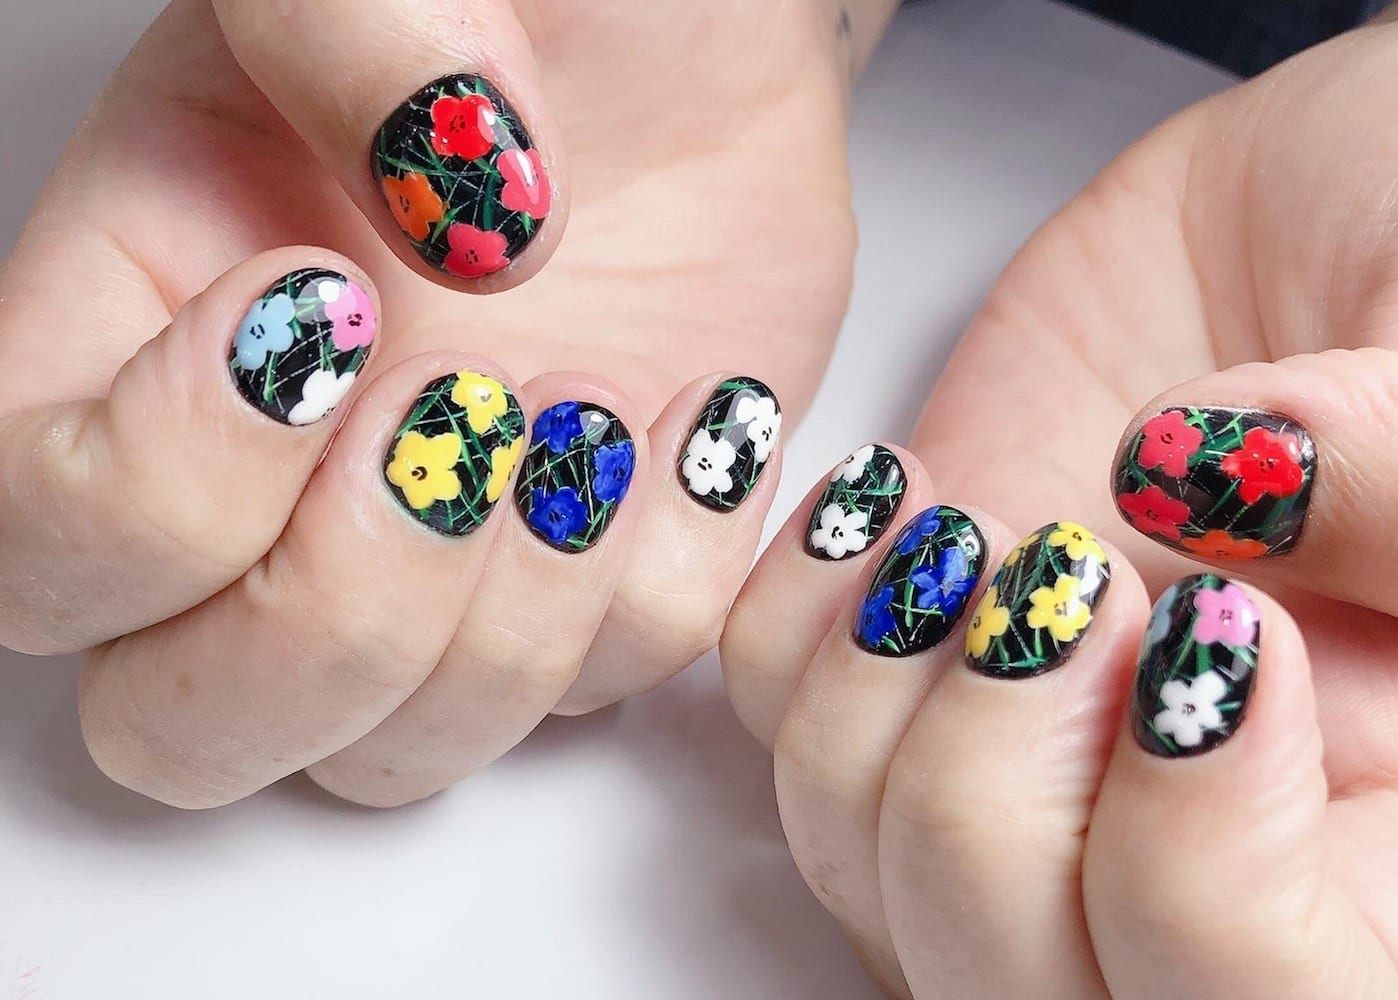 We tried a Russian manicure inspired by Andy Warhol at Ooh La La Nails in Wan Chai